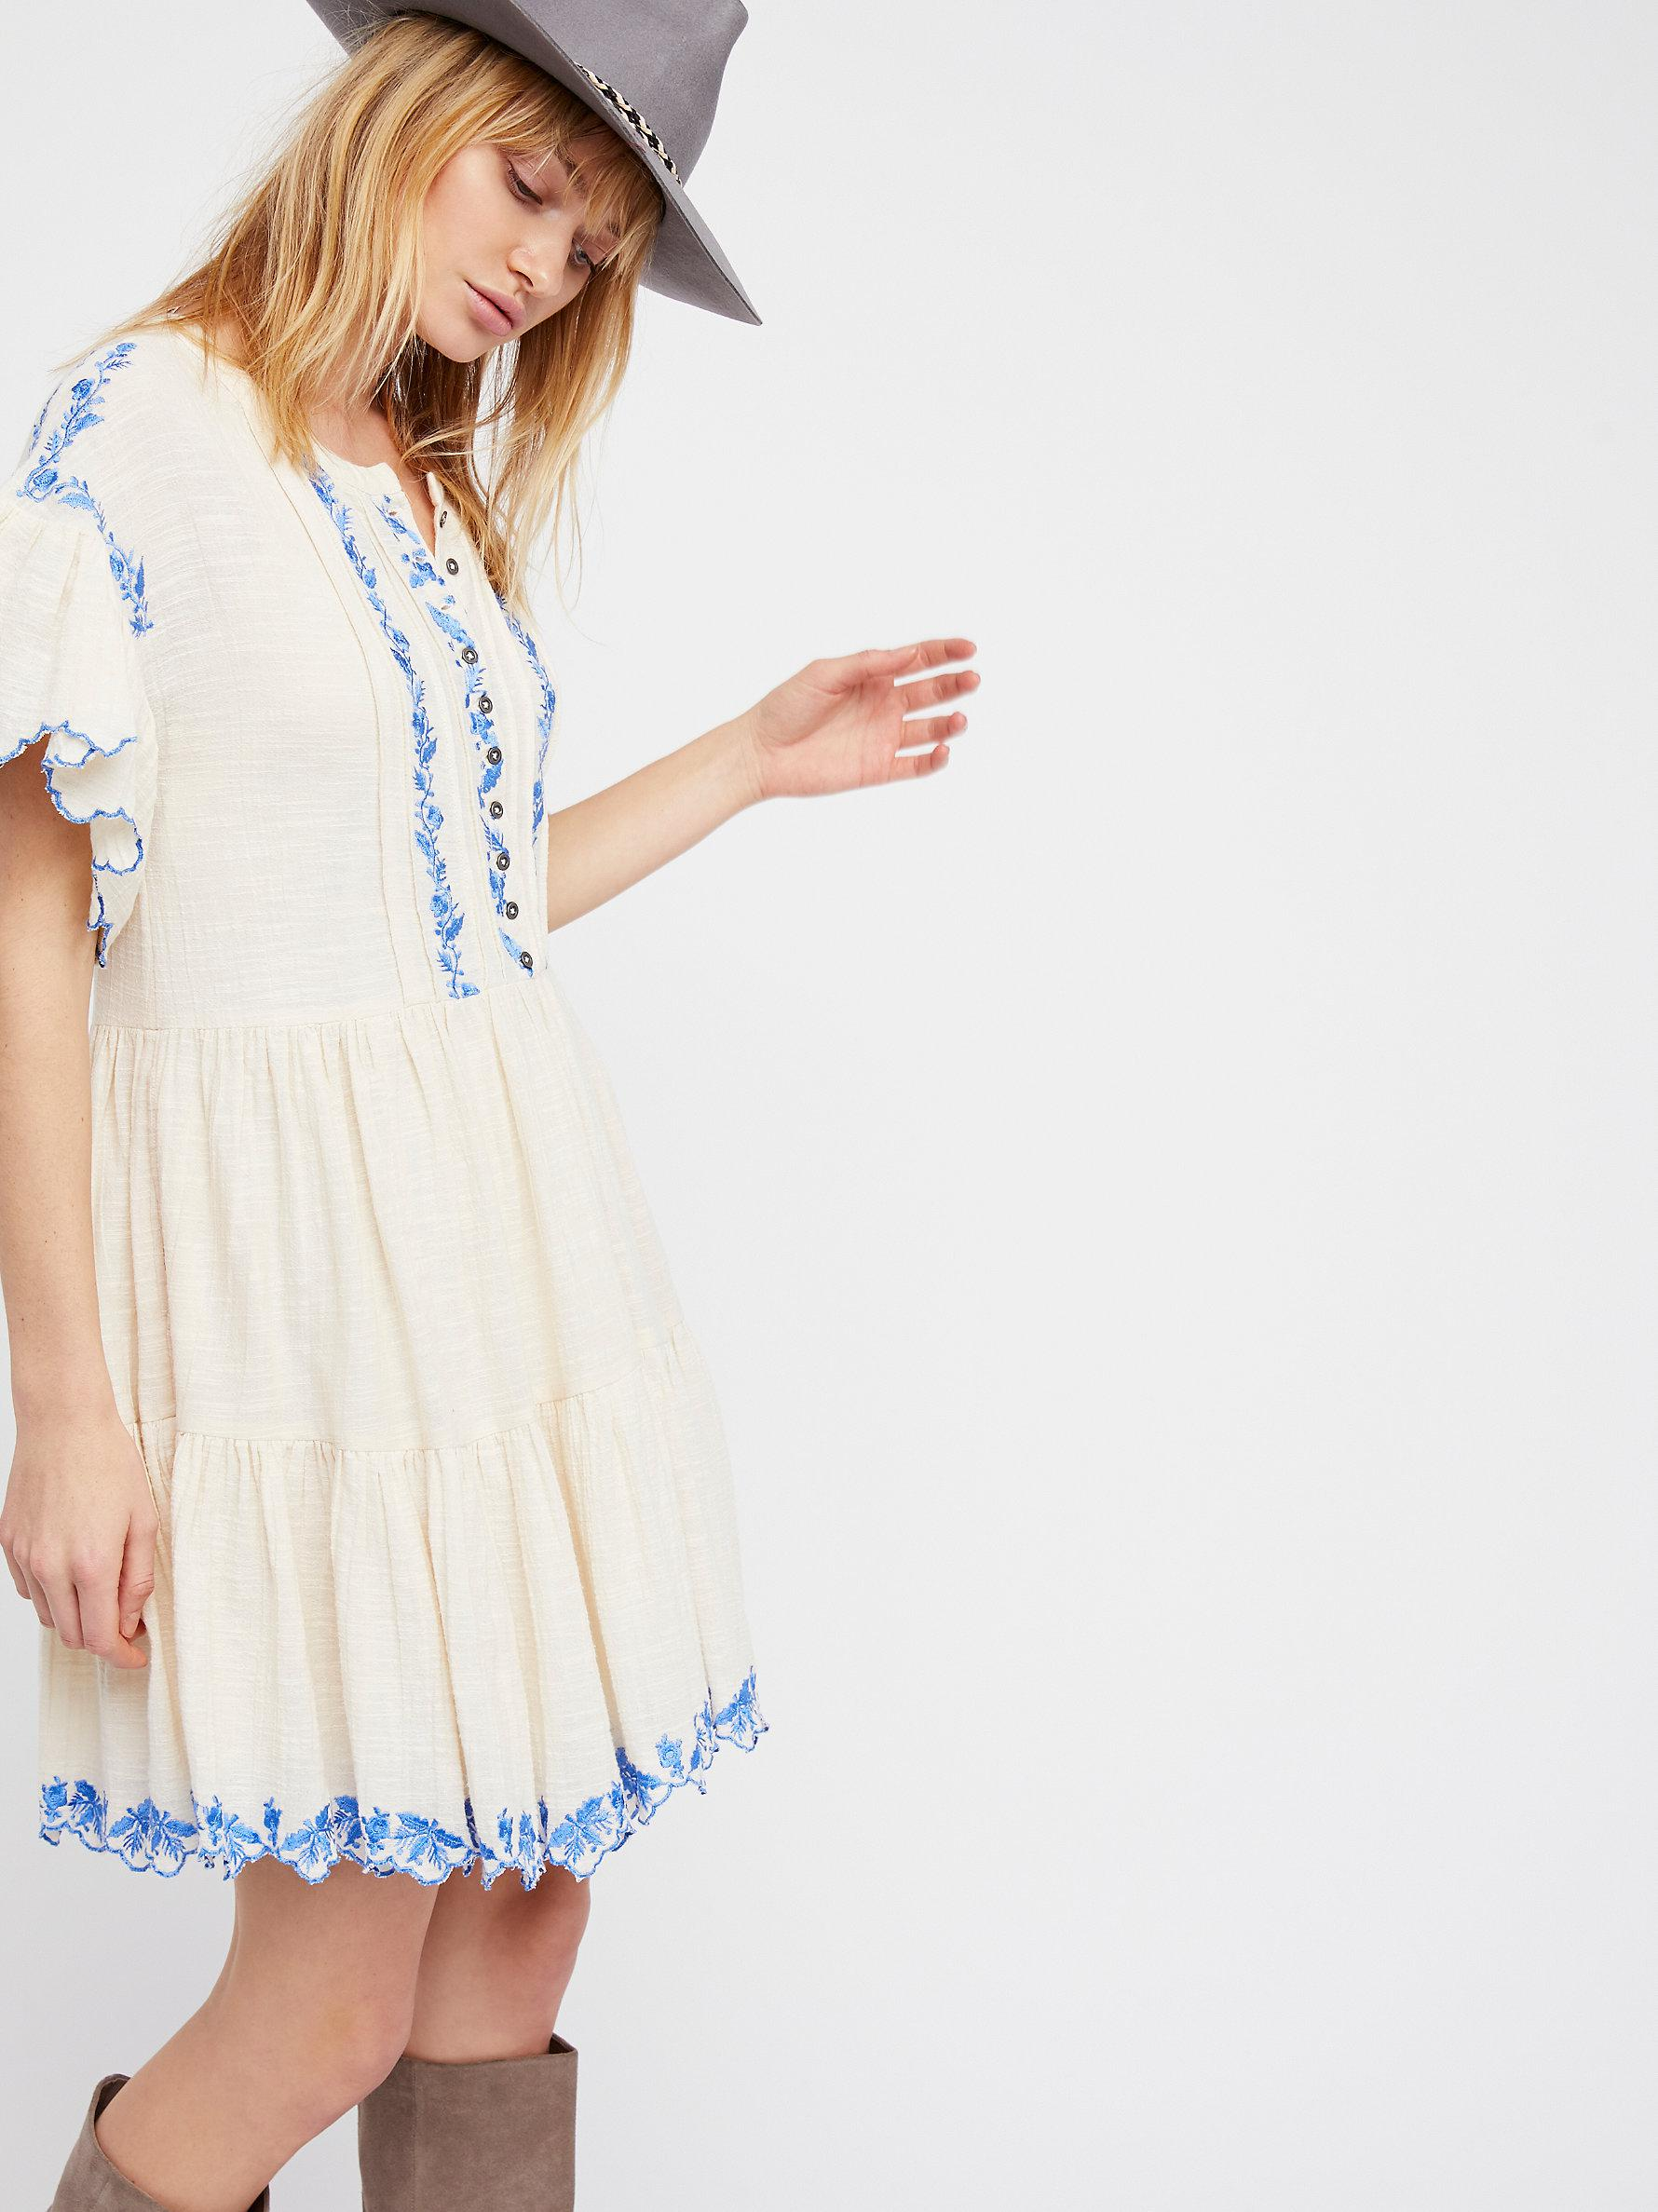 5a1dbf8270 Lyst - Free People Santiago Embroidered Mini Dress in White